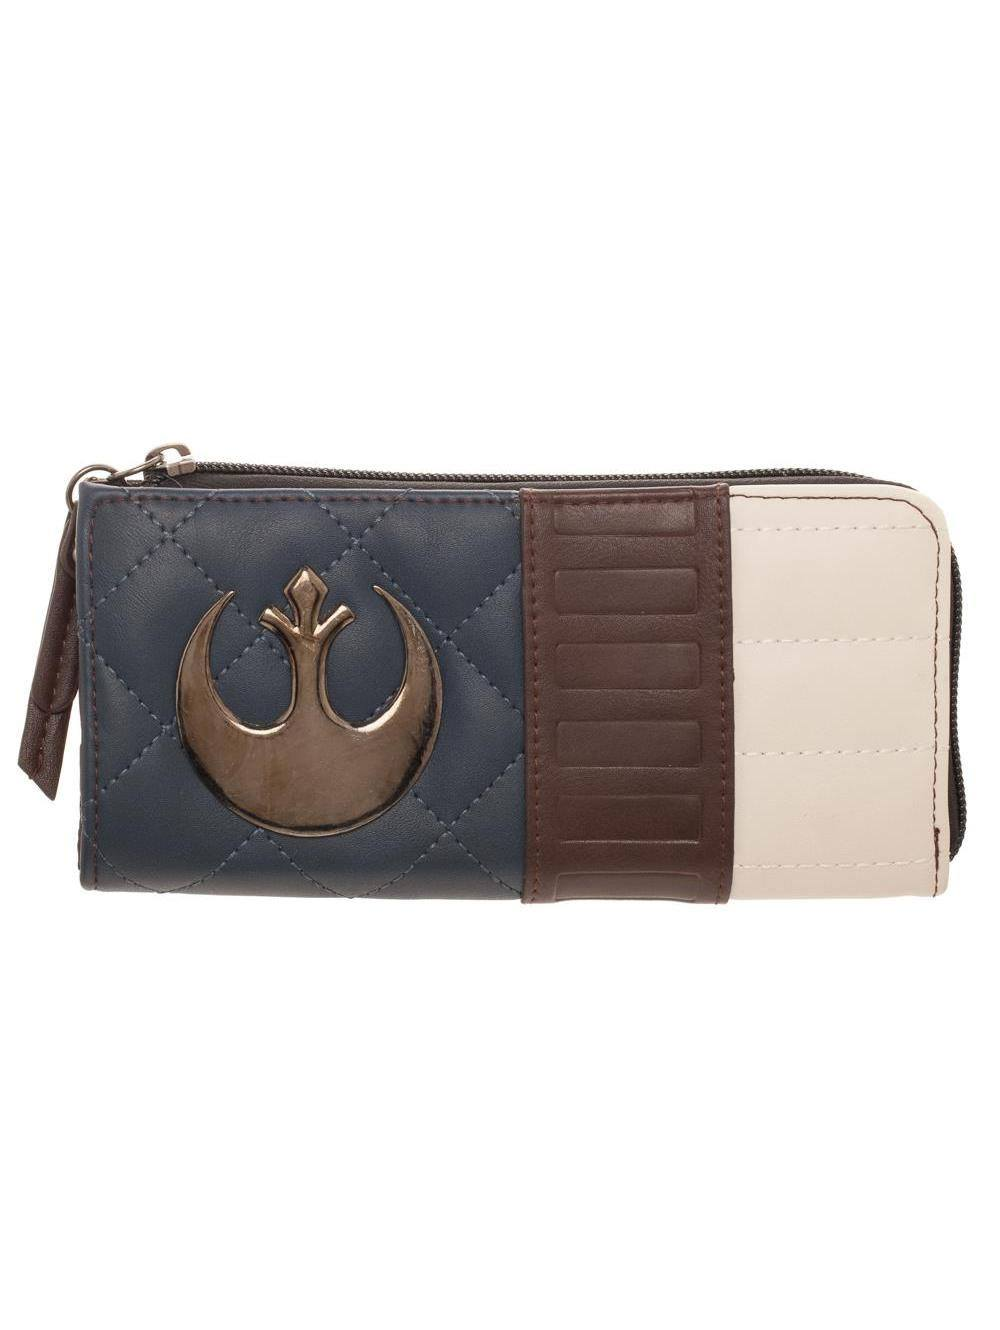 Star Wars Wallet Han Solo Hoth Inspired